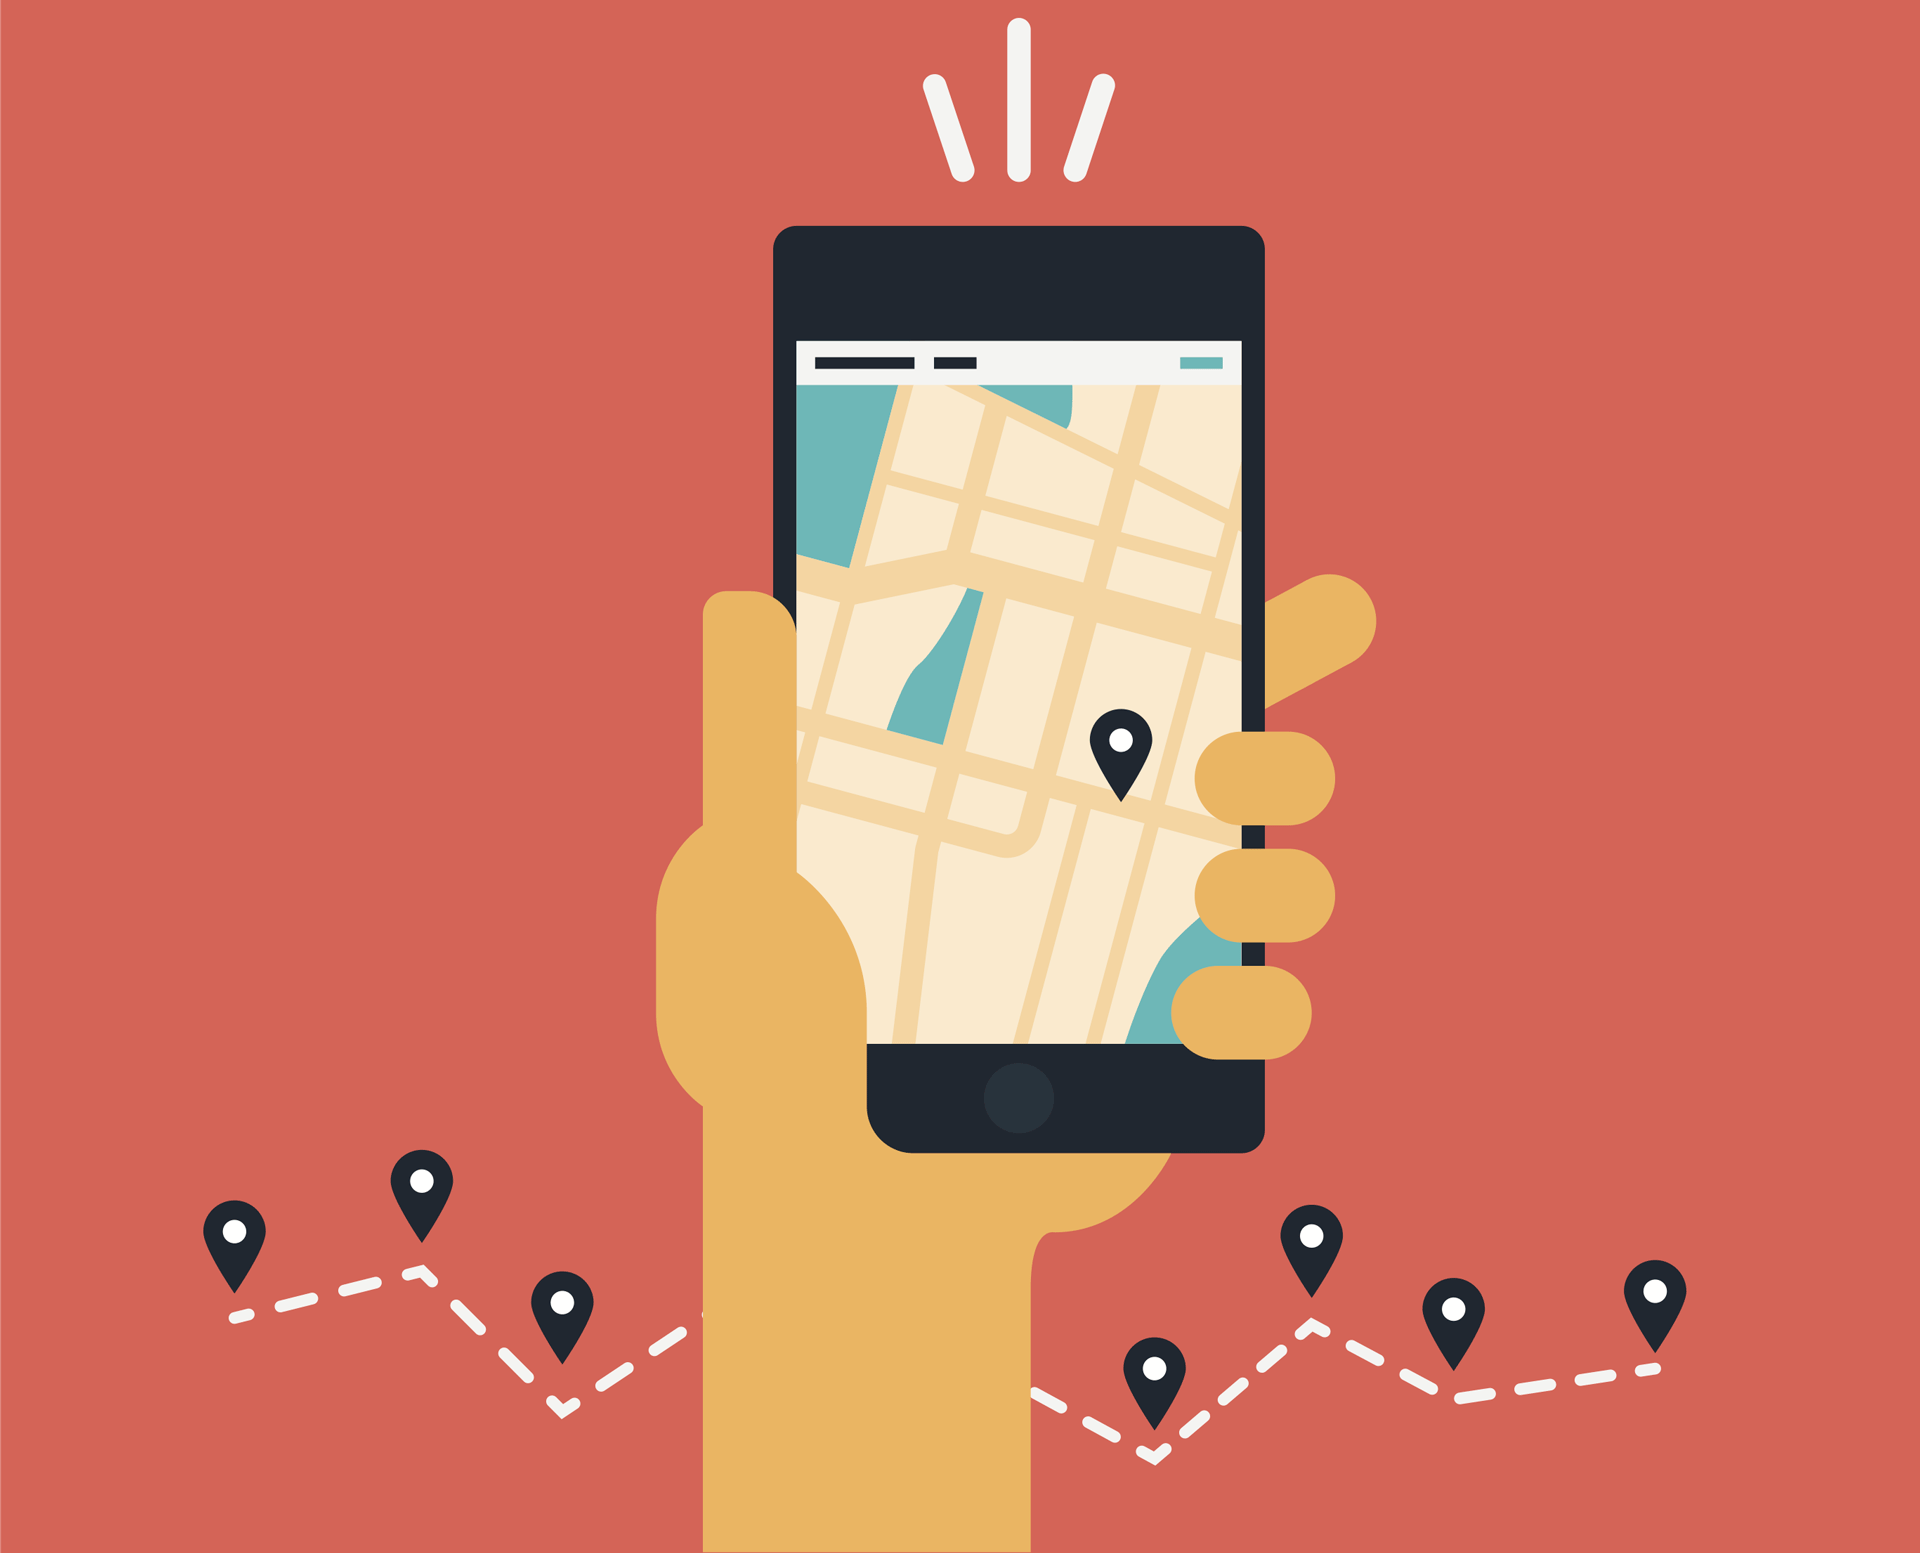 Real-time location tracking apps